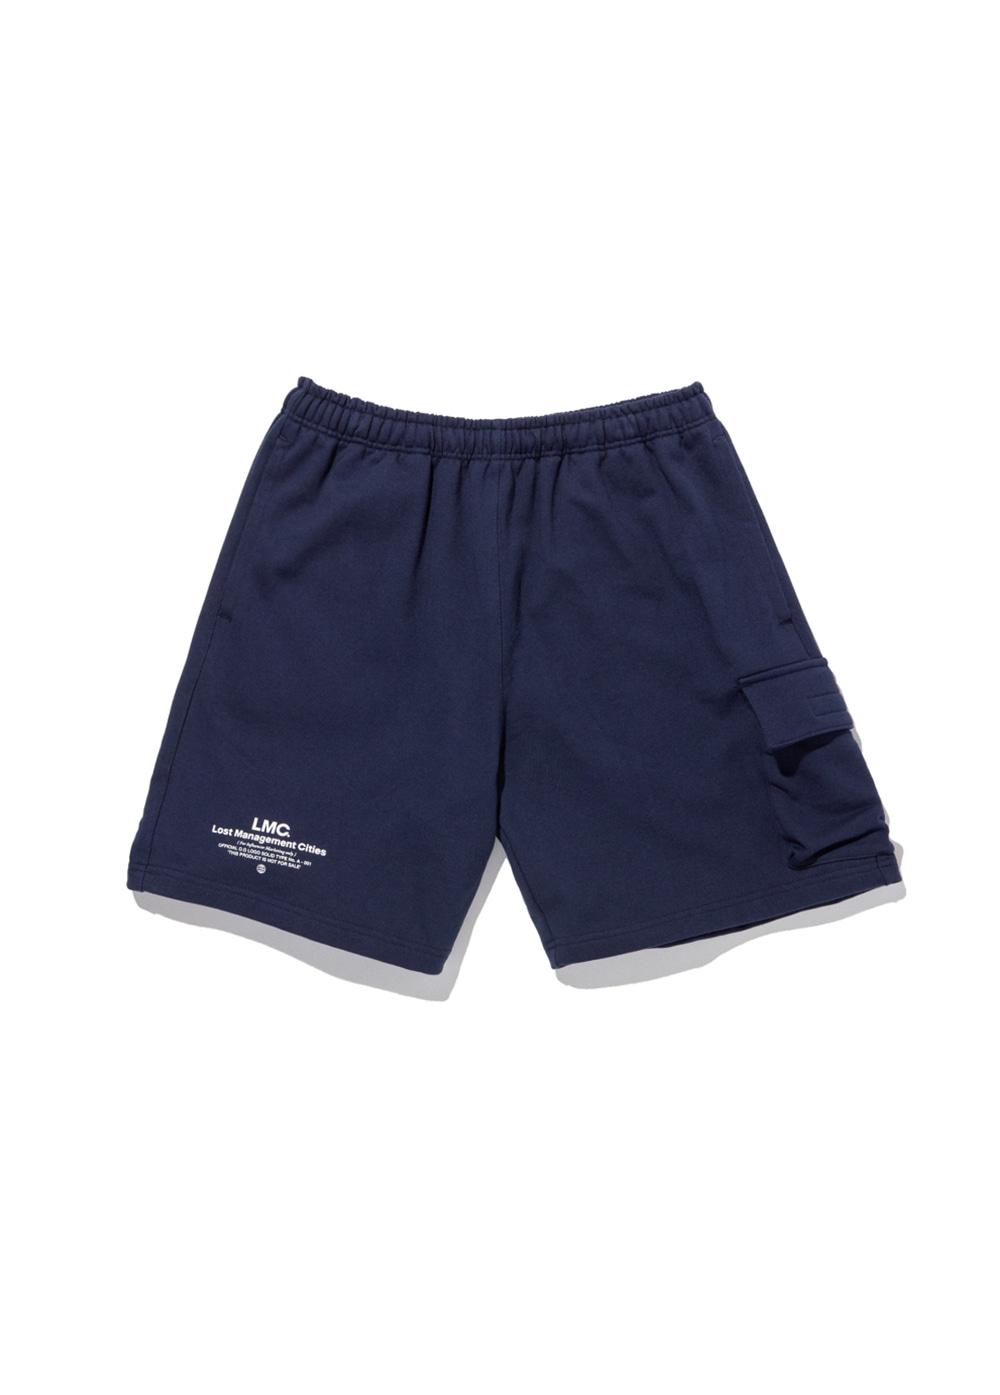 LMC SIDE POCKET SWEAT SHORTS navy